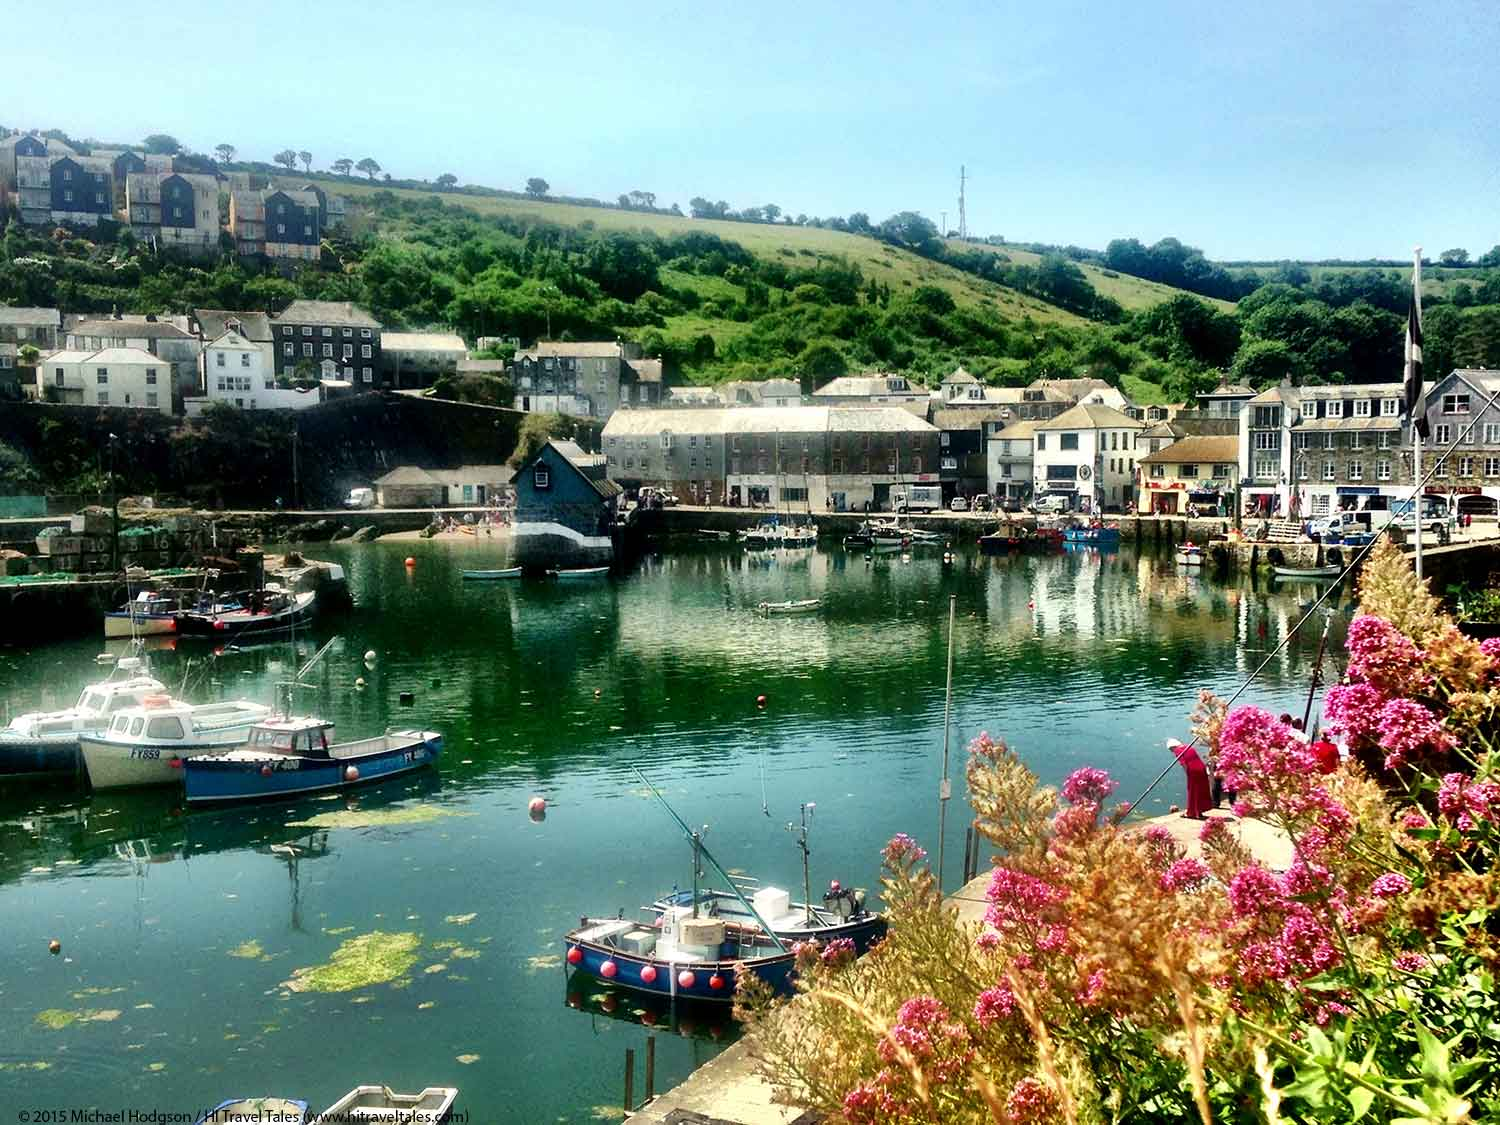 Discover hidden Cornwall: Mevagissey and Pentewan full of charm